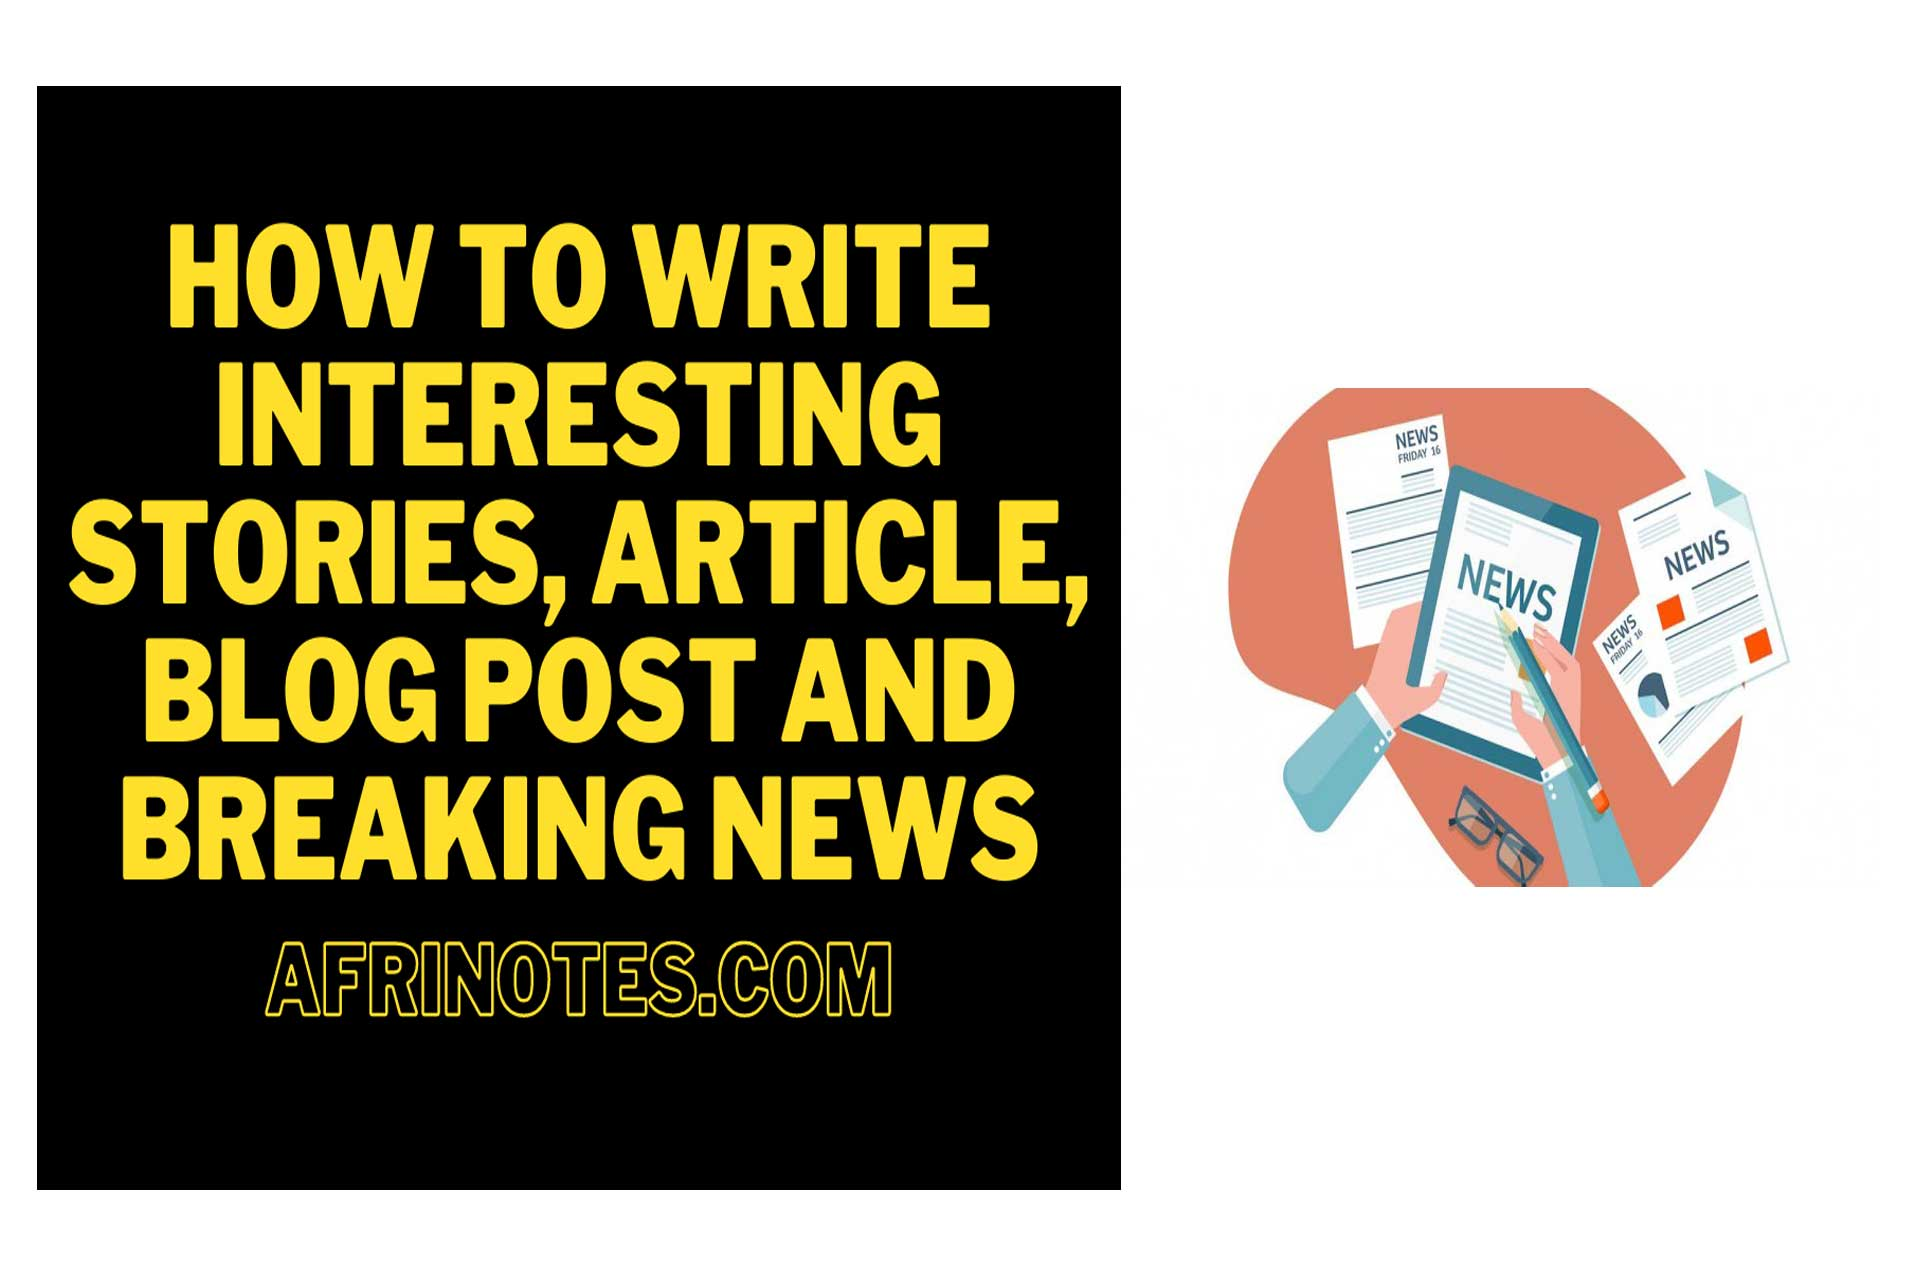 How To Write Interesting Stories, Article, Blog Post And Breaking News